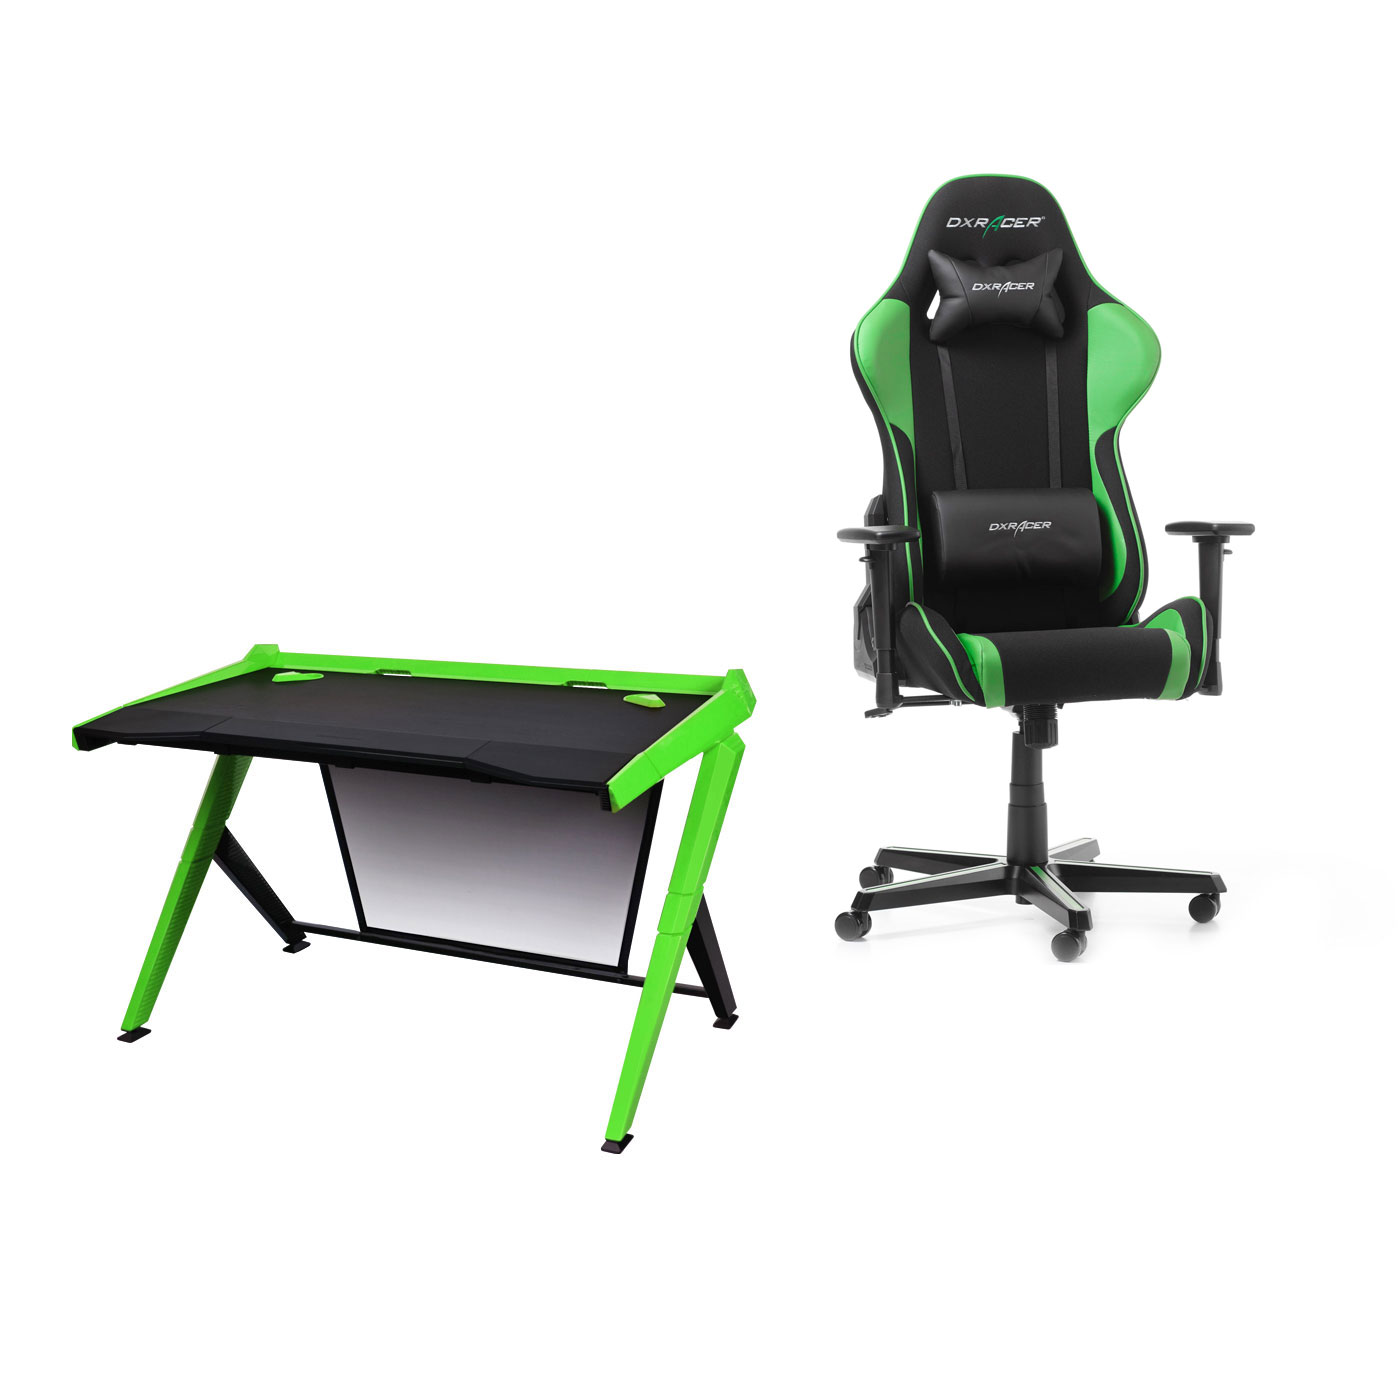 dxracer gaming station vert fauteuil gamer dxracer sur. Black Bedroom Furniture Sets. Home Design Ideas